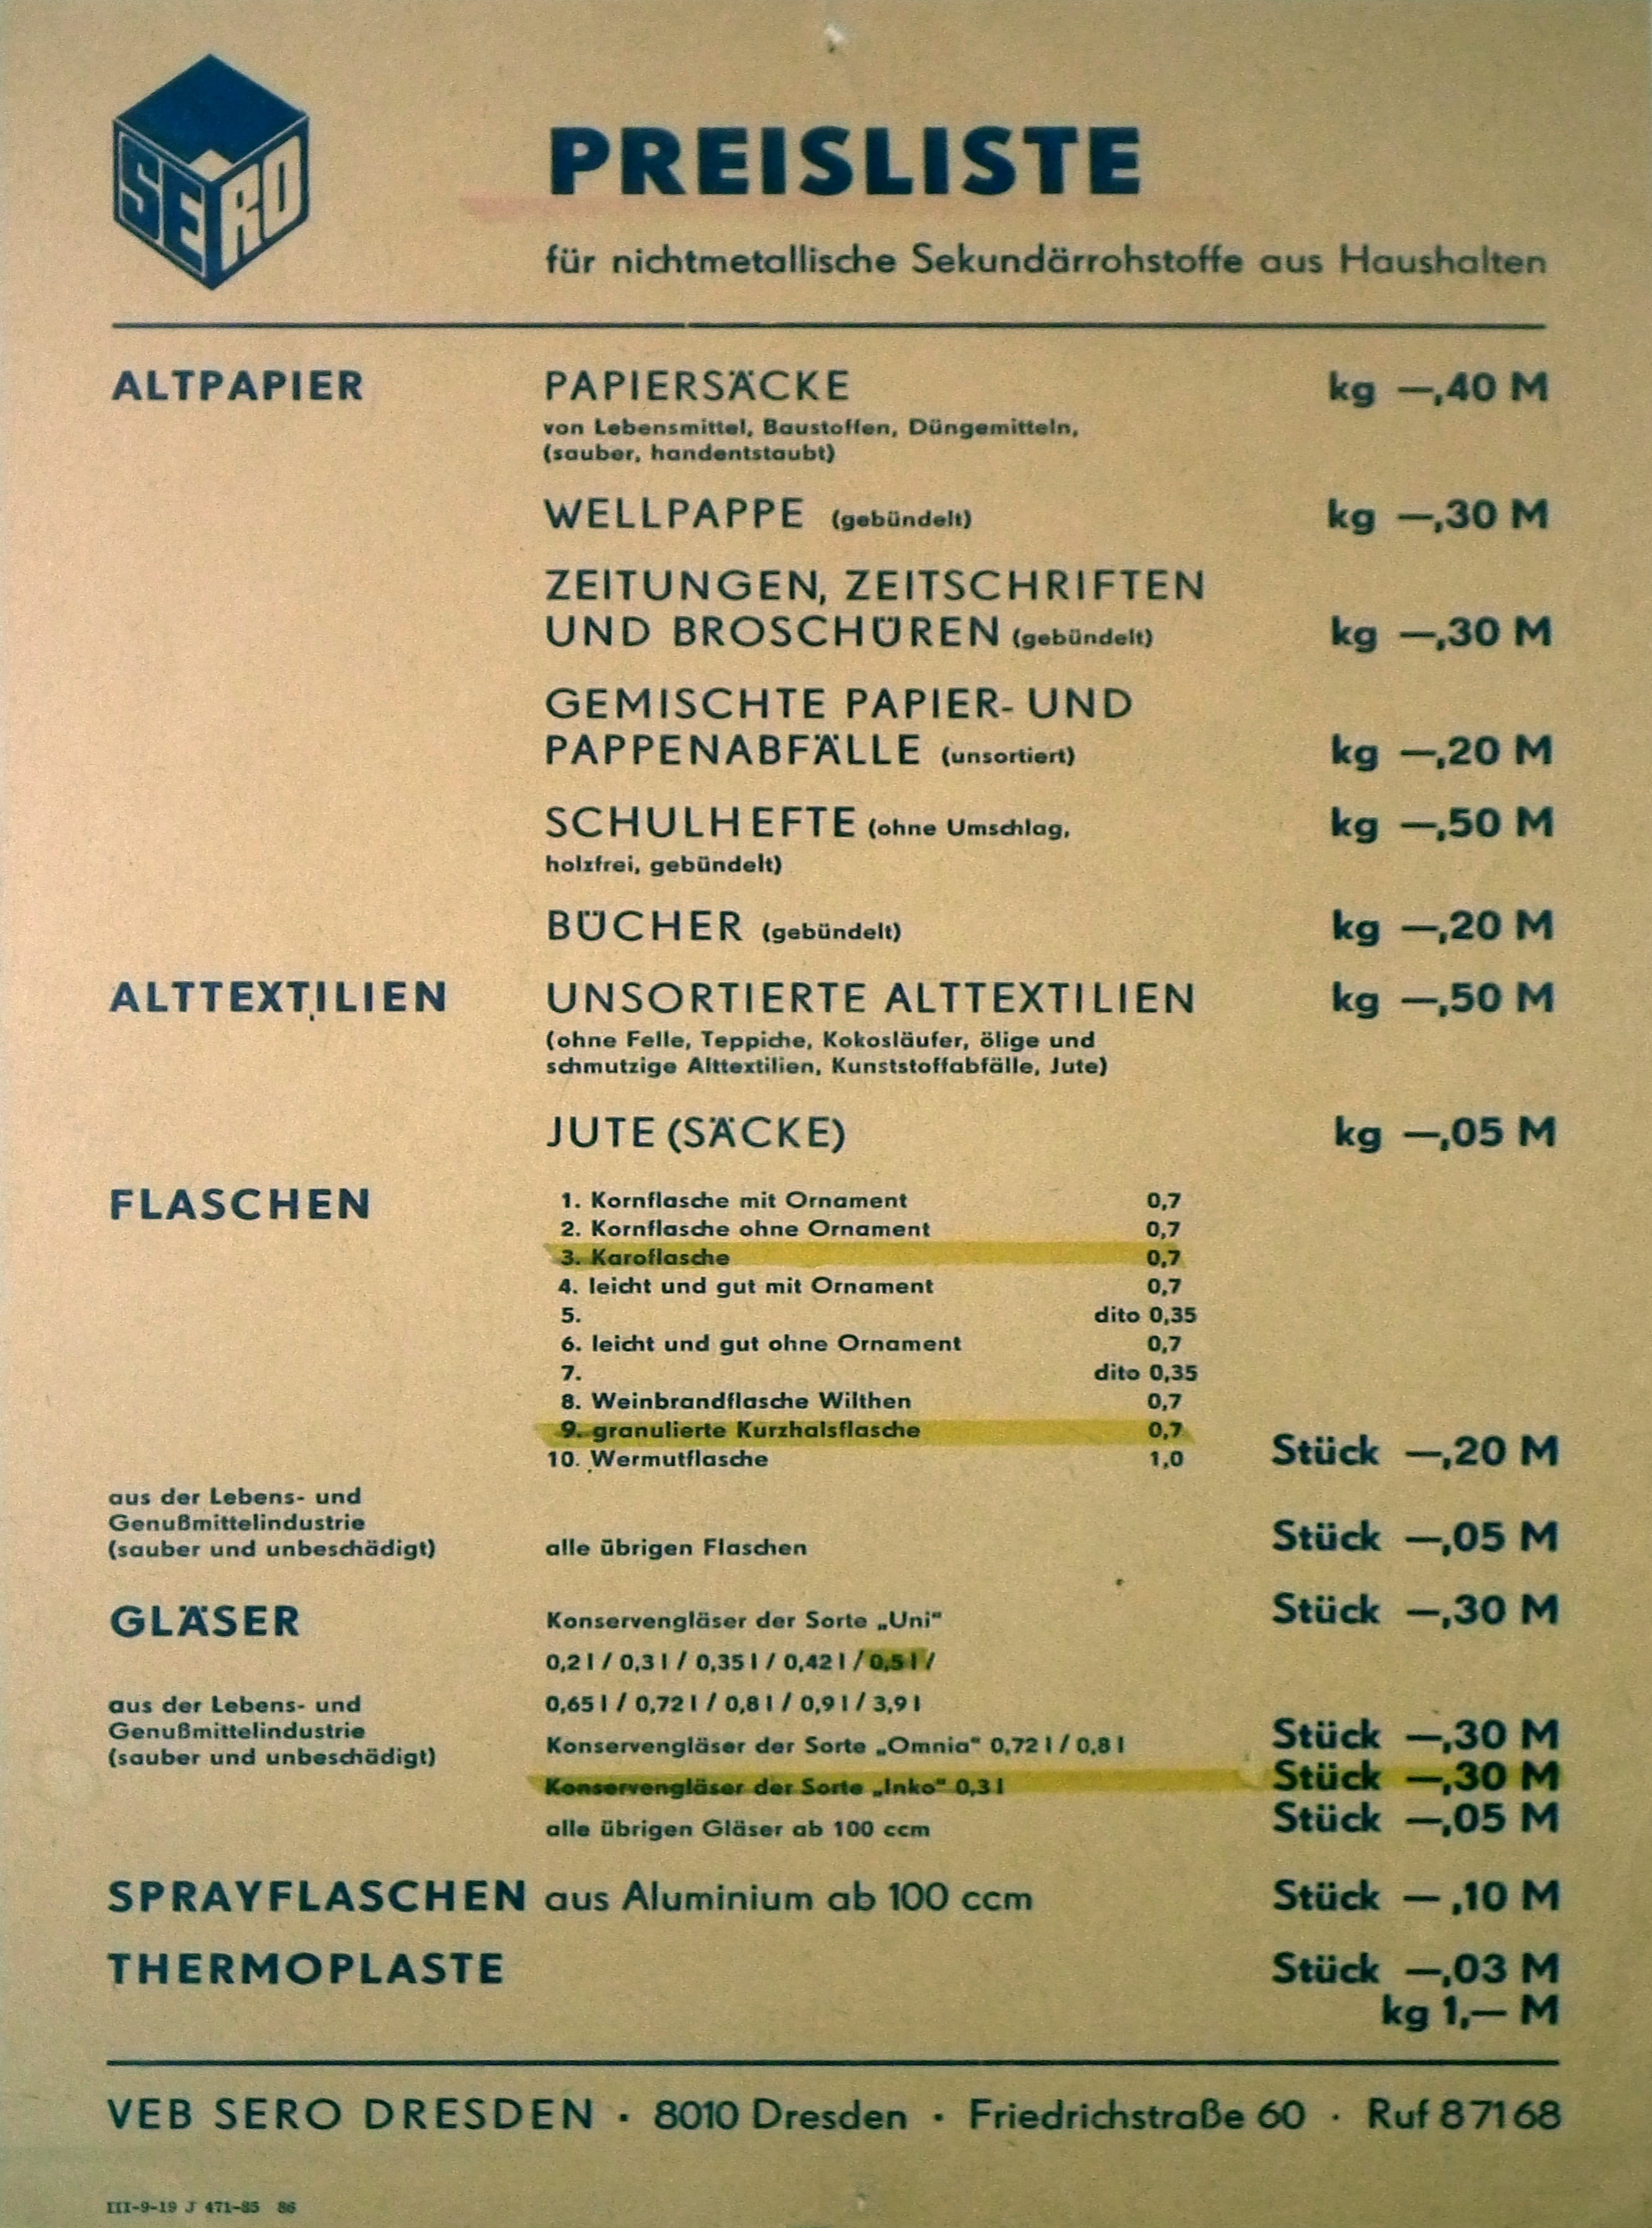 Scan of yellowed paper with price list for recycled materials in German